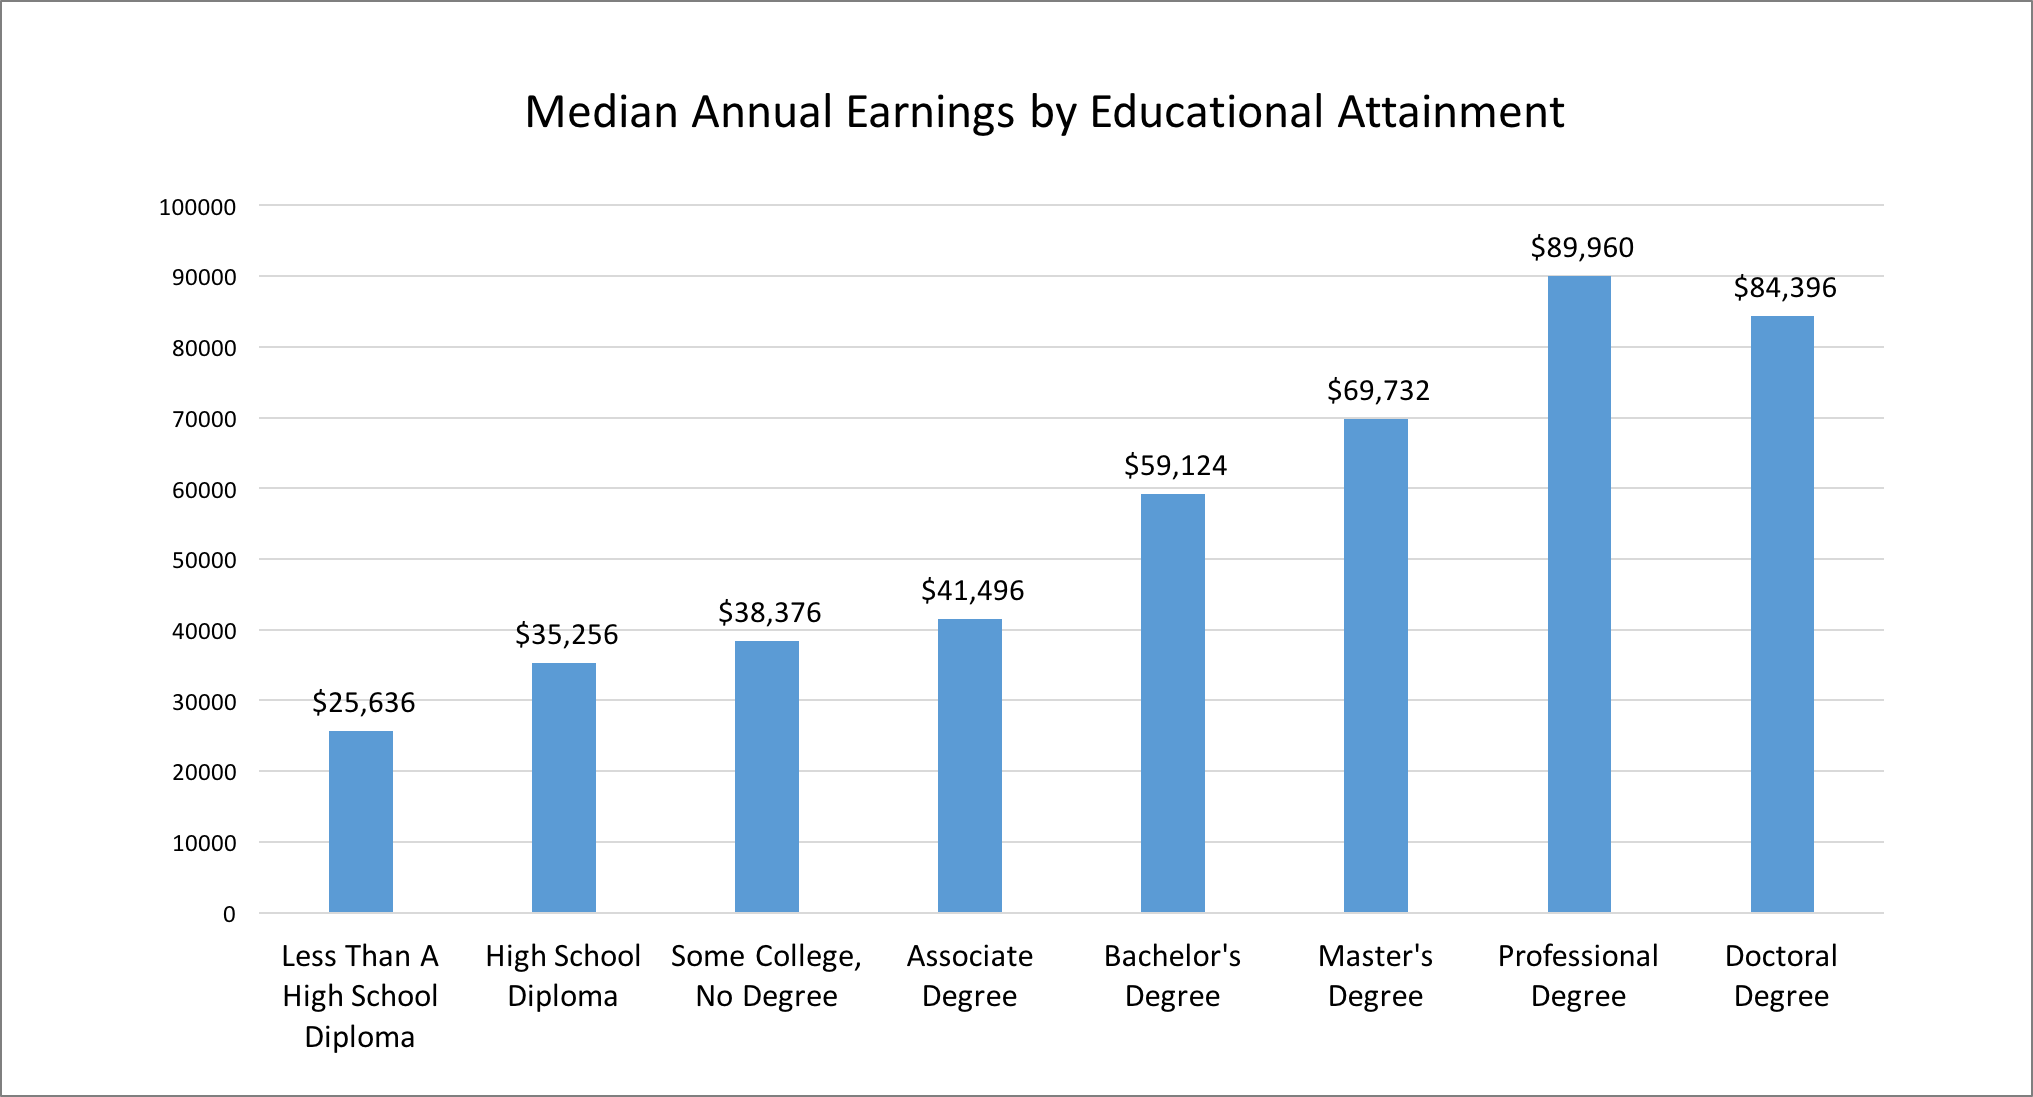 Bachelor's Degree Holder Median Annual Earnings by Educational Attainment